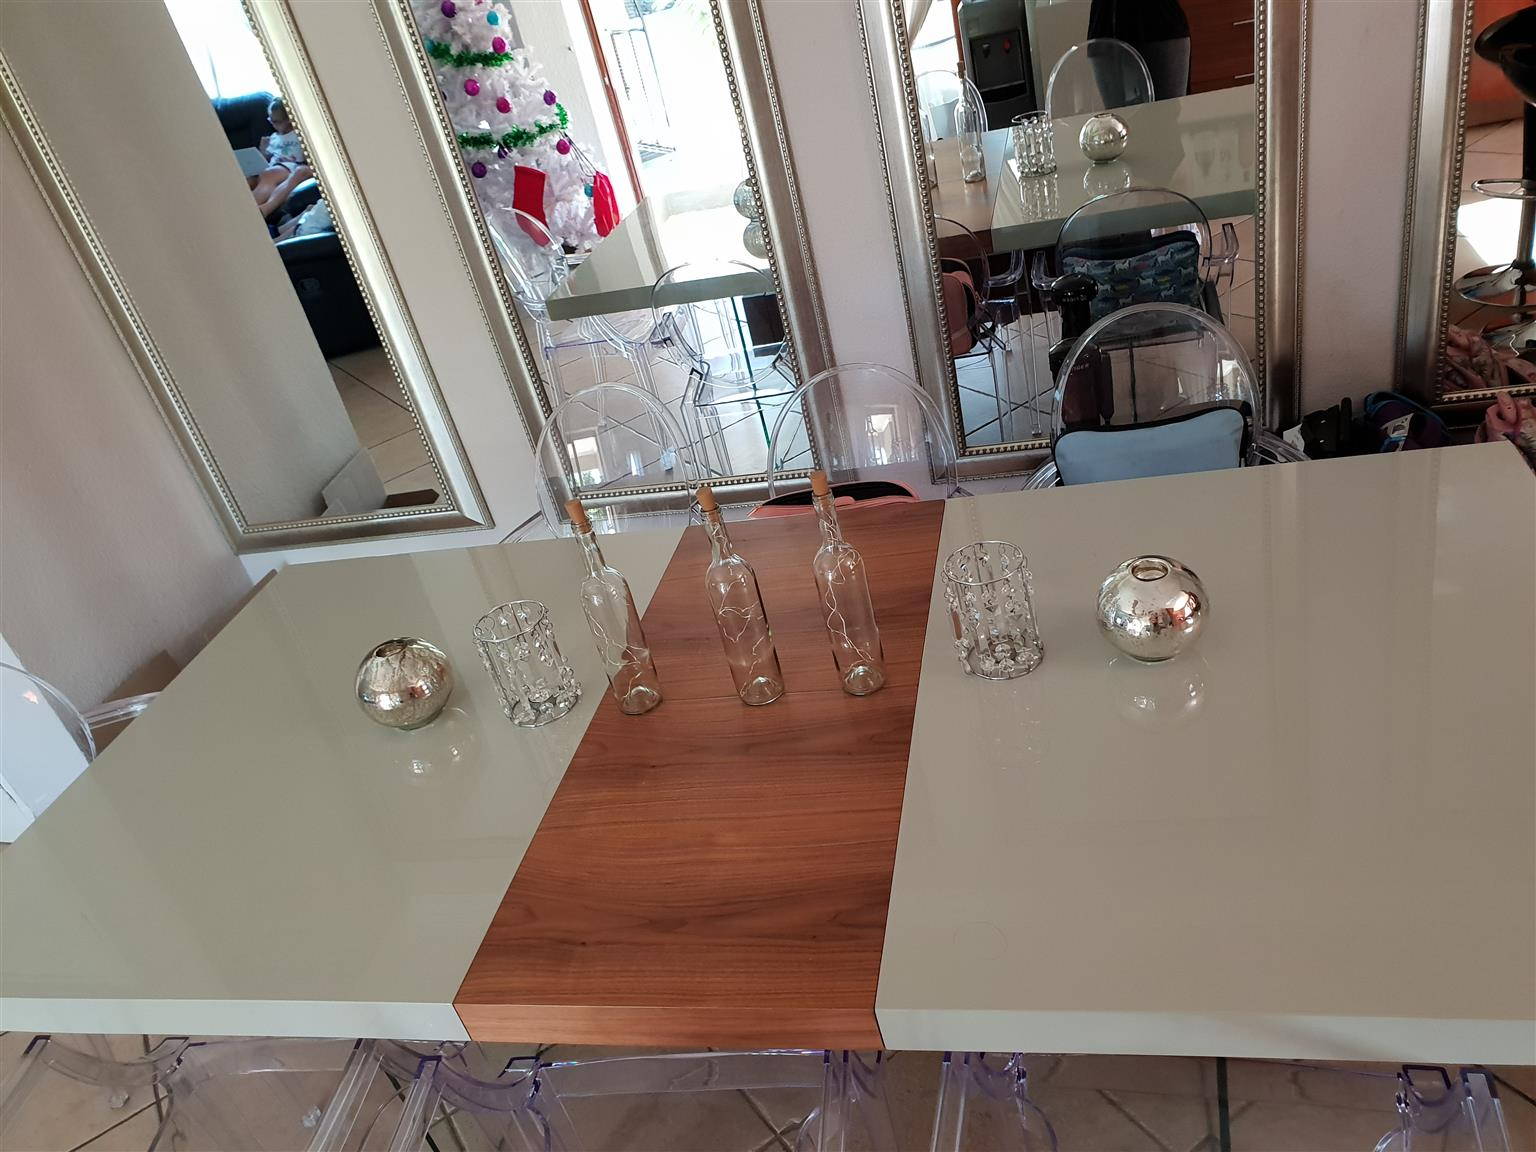 Dining table with server